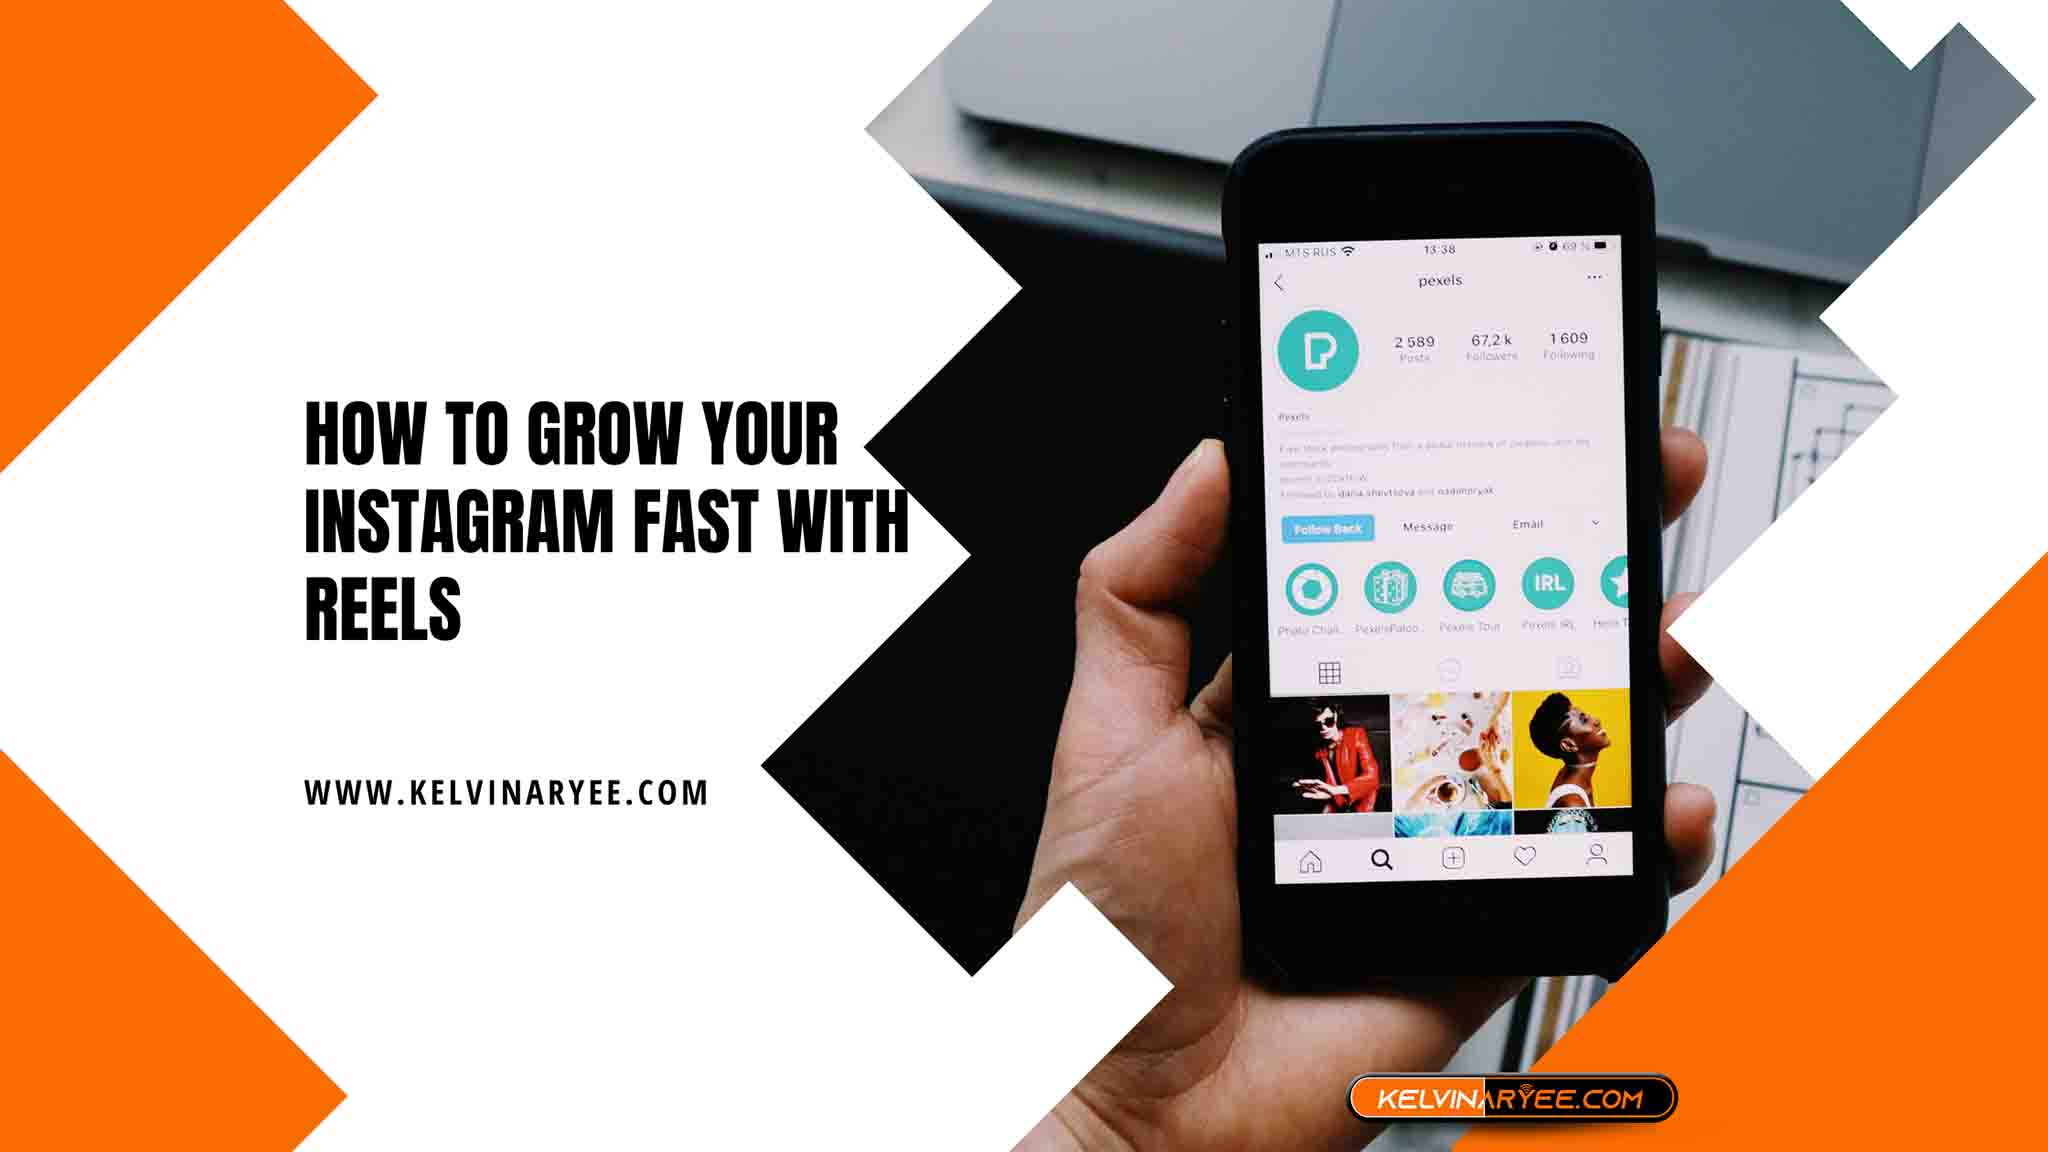 How to Grow Your Instagram Fast with Reels